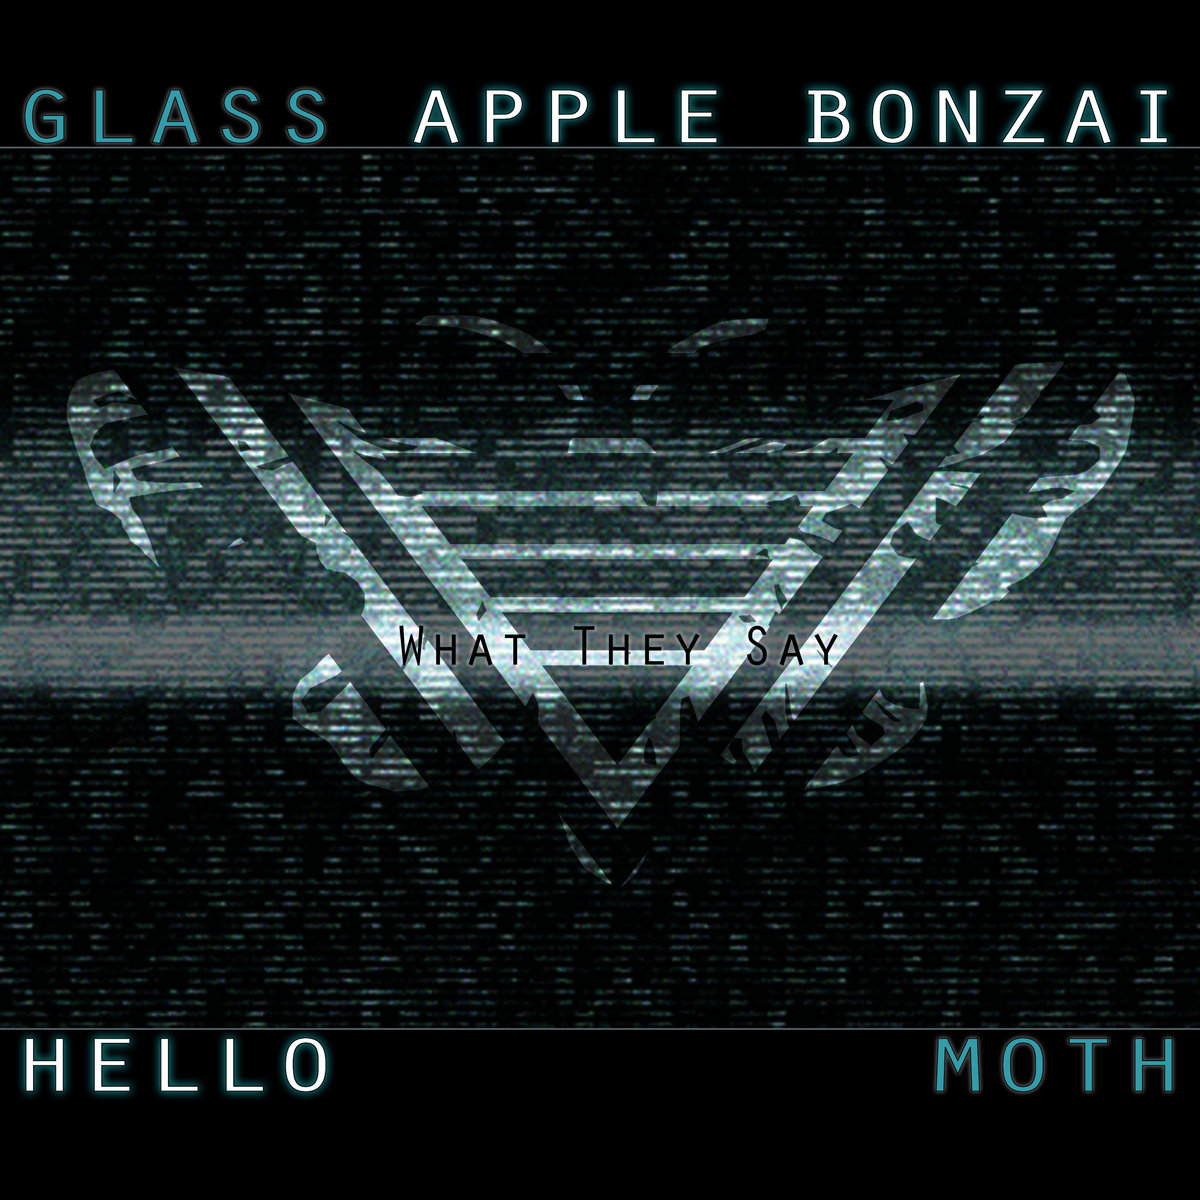 What they say feat hello moth glass apple bonzai by glass apple bonzai thecheapjerseys Choice Image